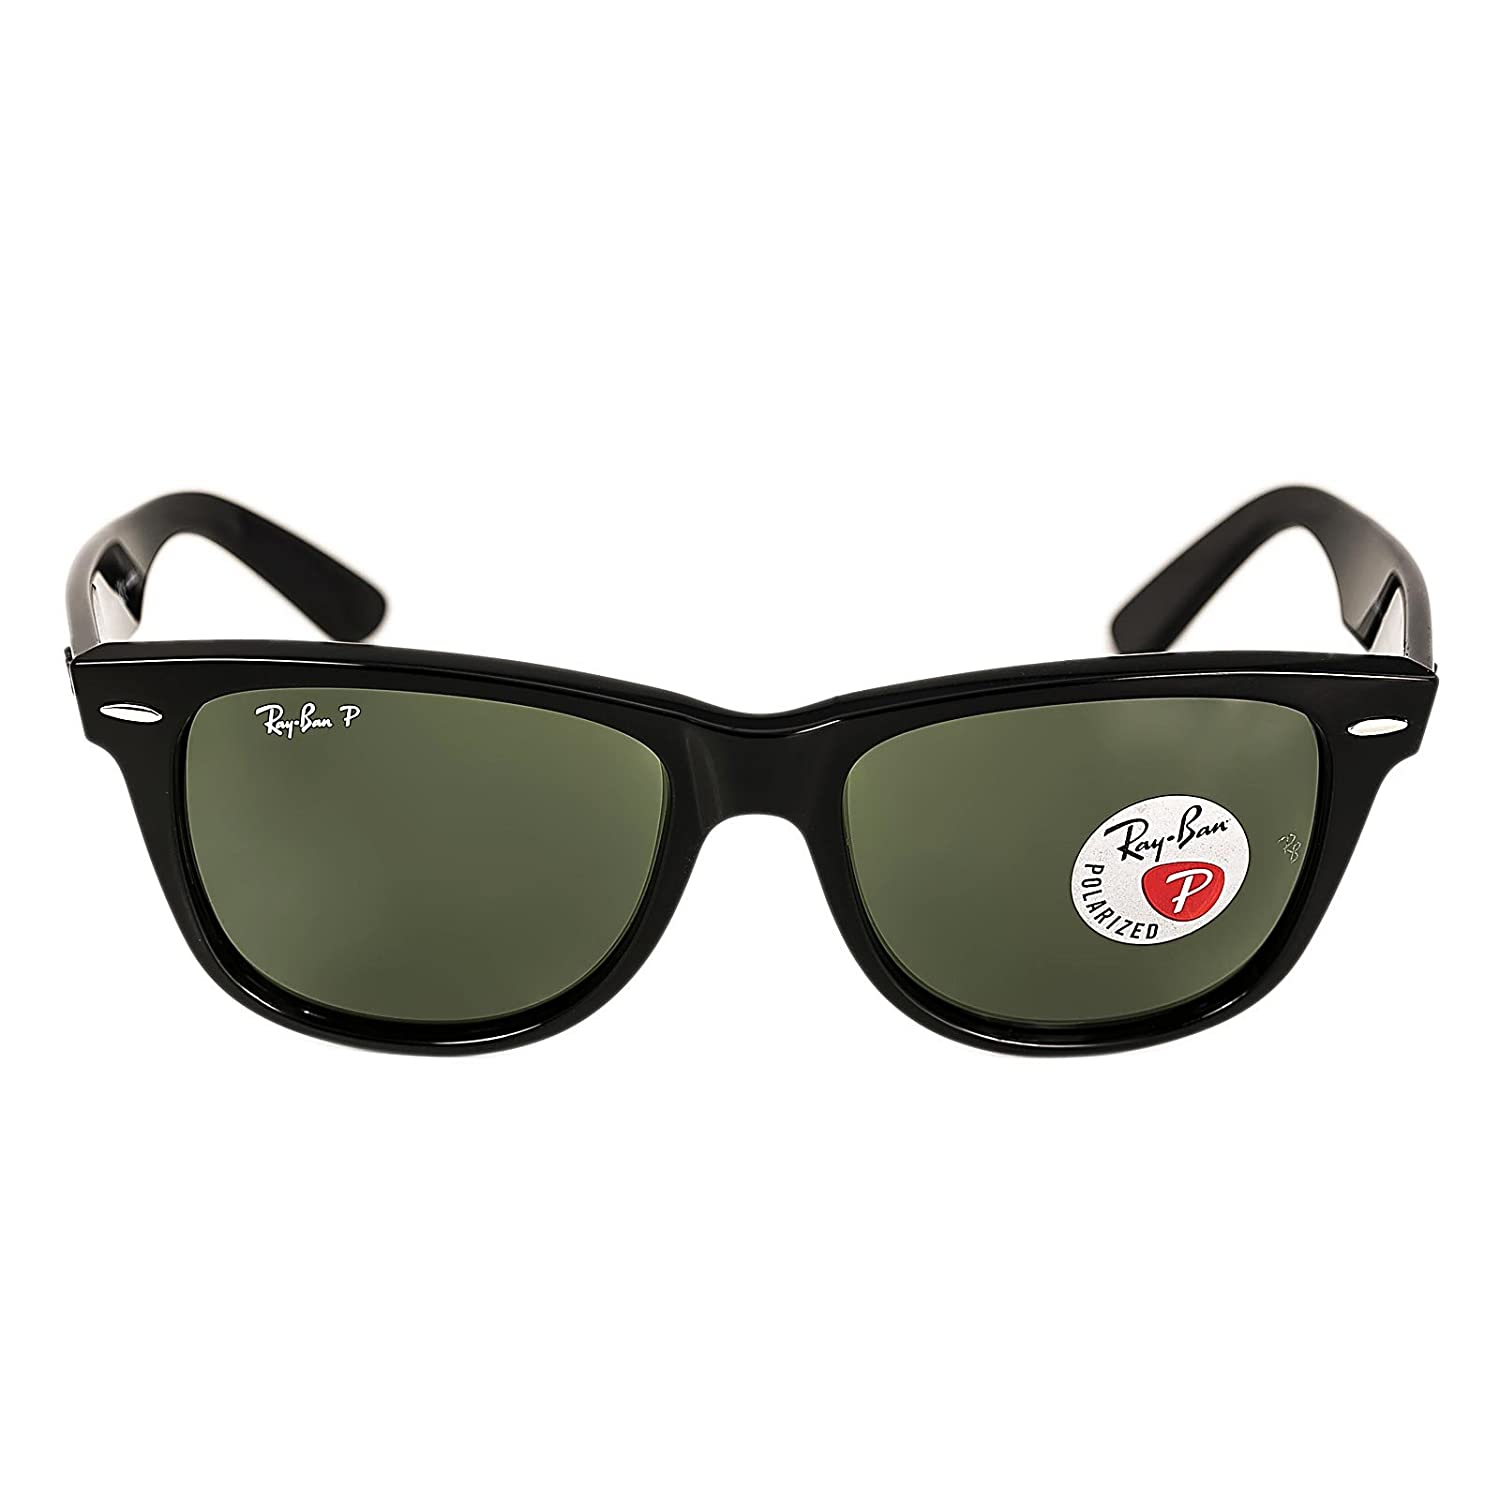 aeaae4dd6957 Amazon.com  Ray-Ban RB 2140 901-58 54 Wayfarer Black Plastic Frame Crystal  Polarized Green Lenses Sunglasses  Shoes